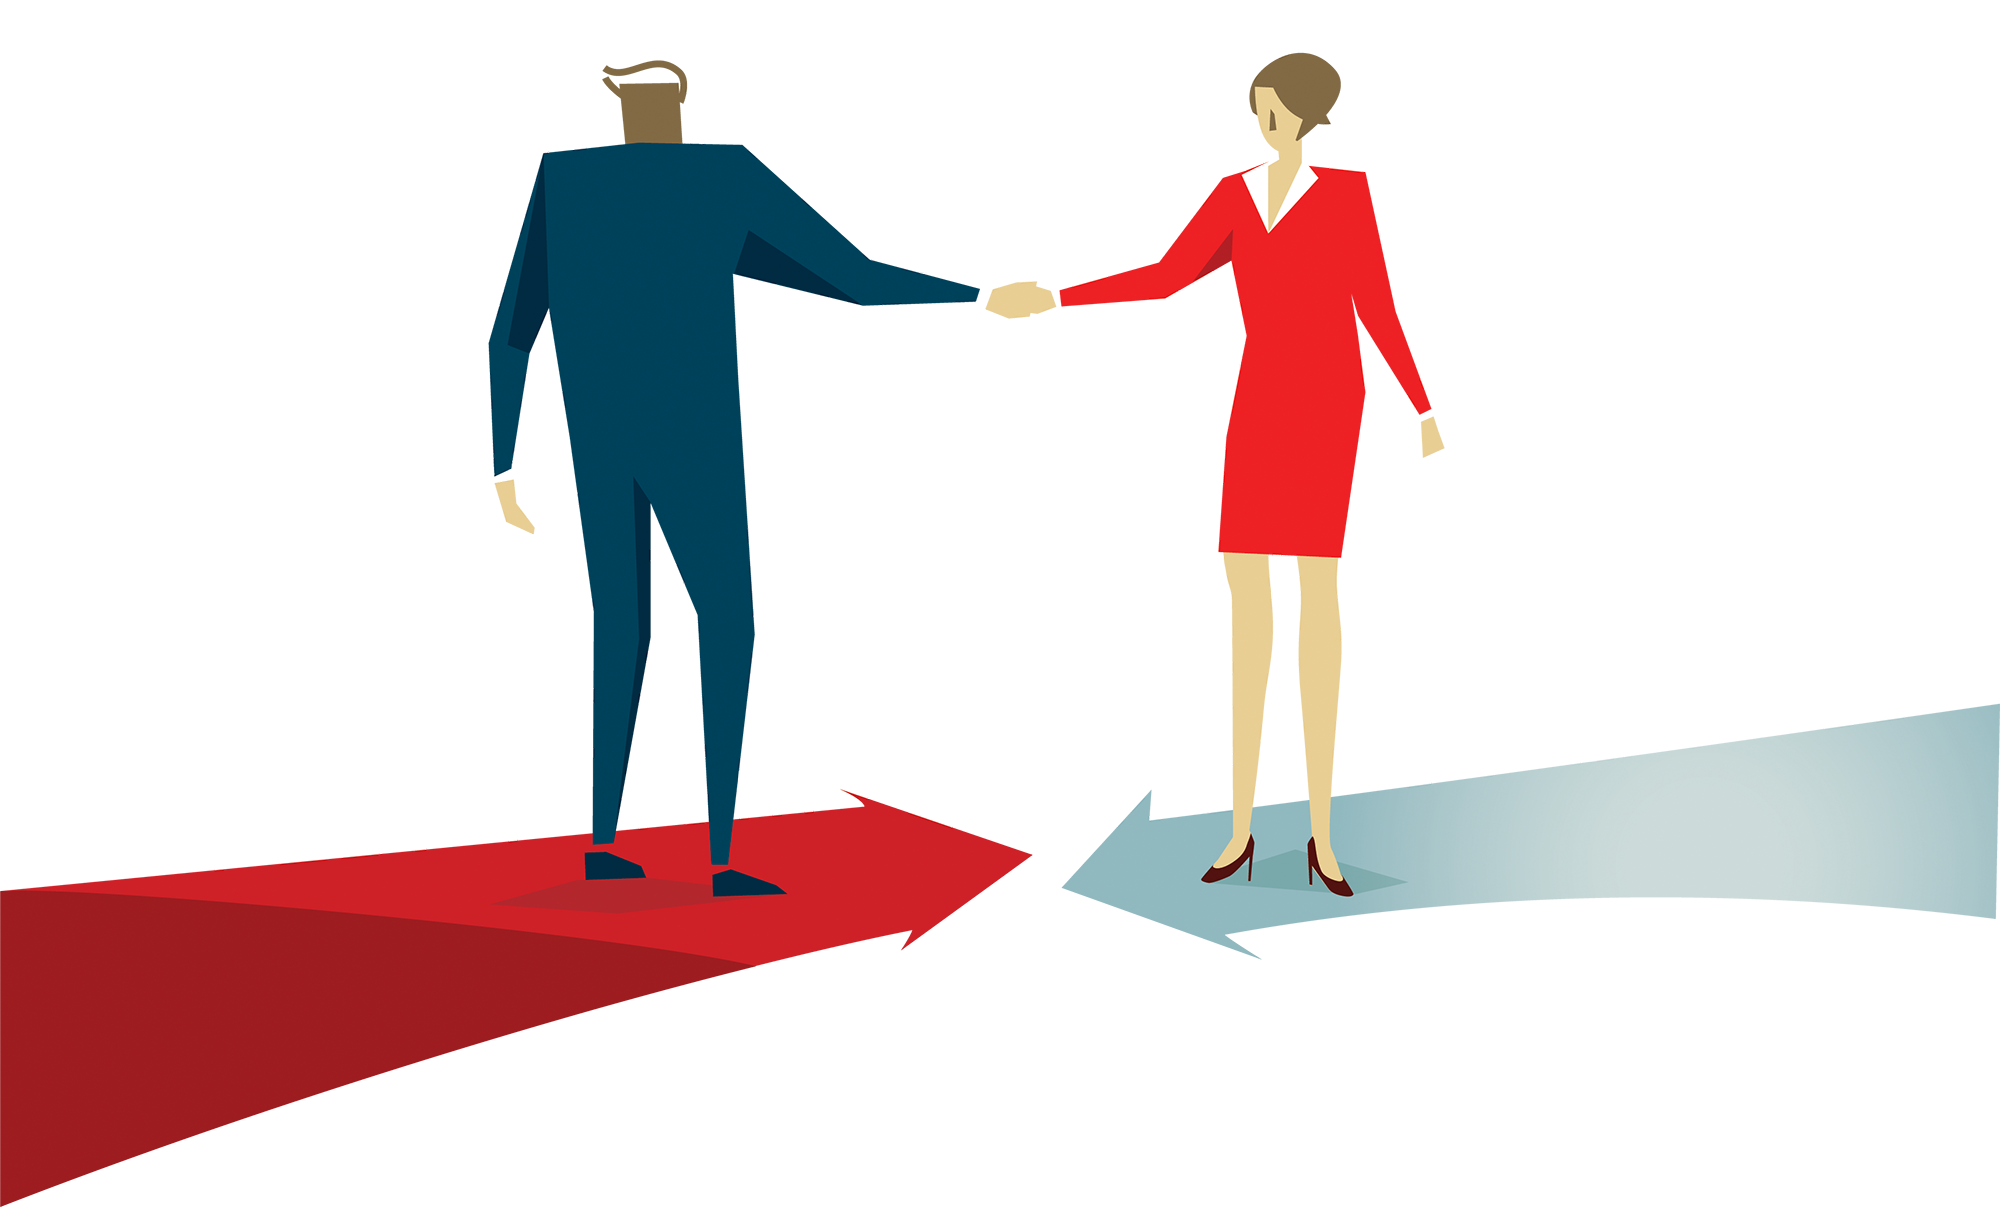 Illustration of Man and Women Shaking Hands